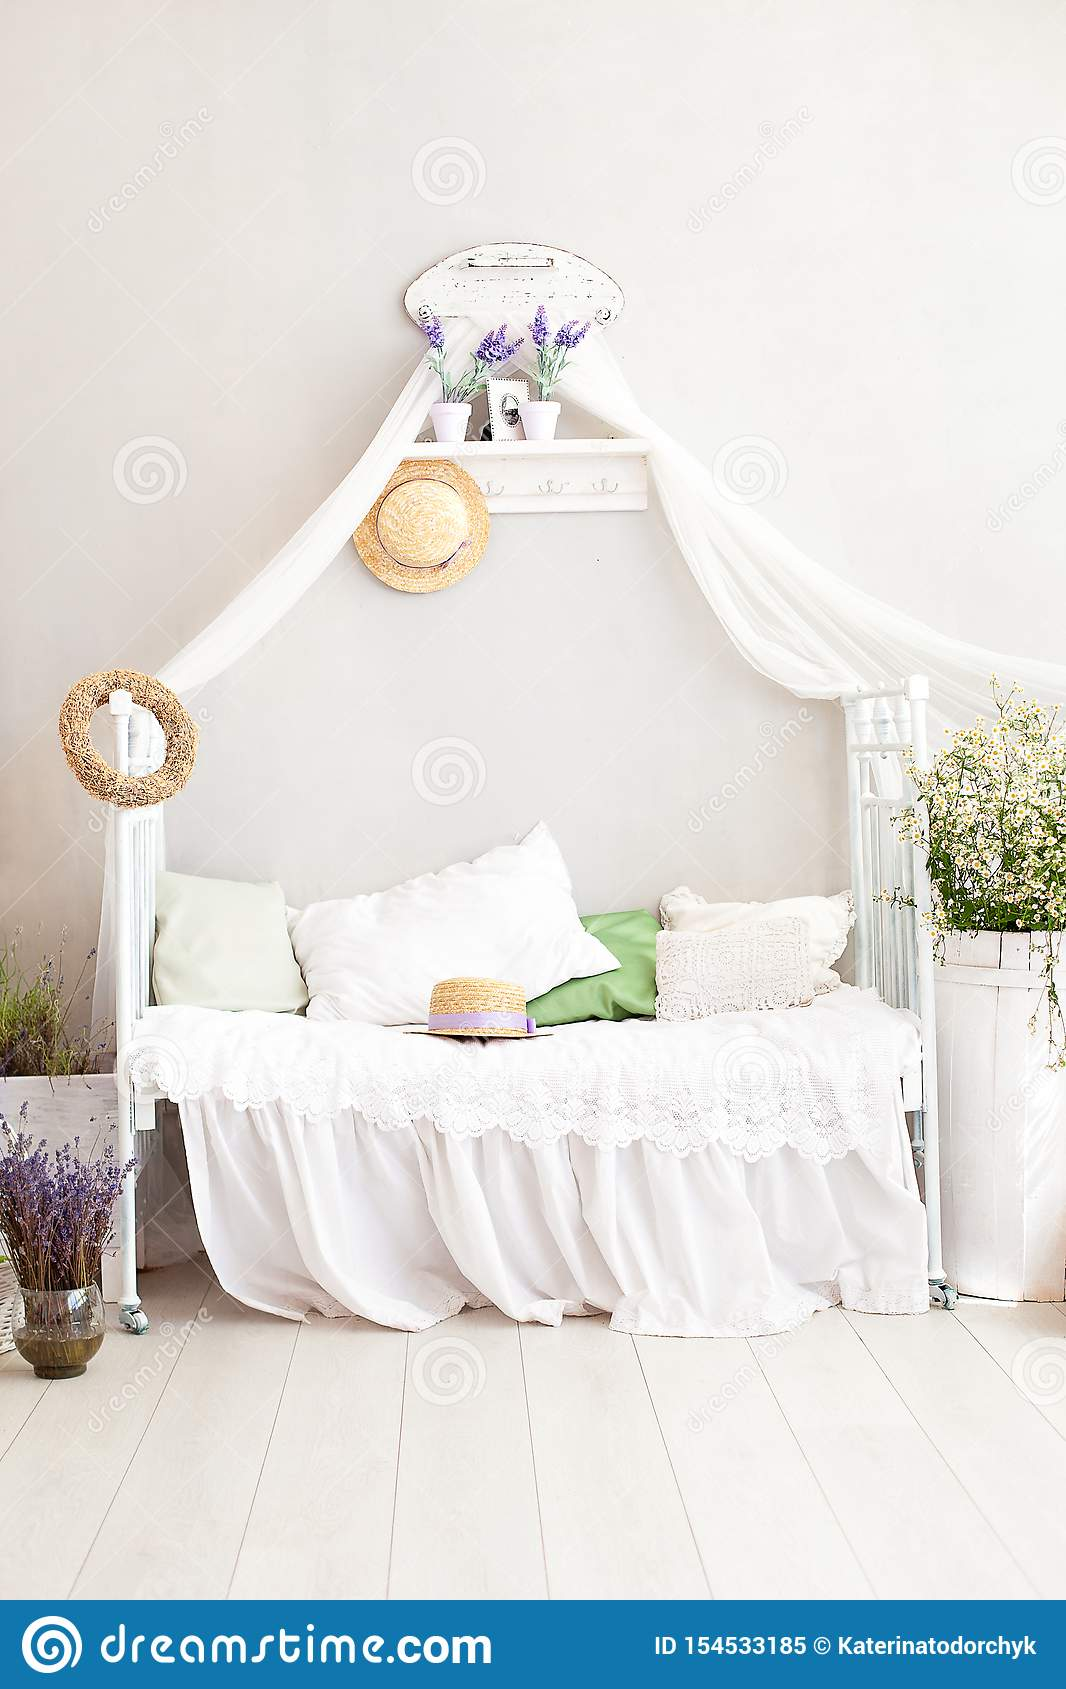 Provence Style, Rustic Style! Shabby Chic Interior Girly ...